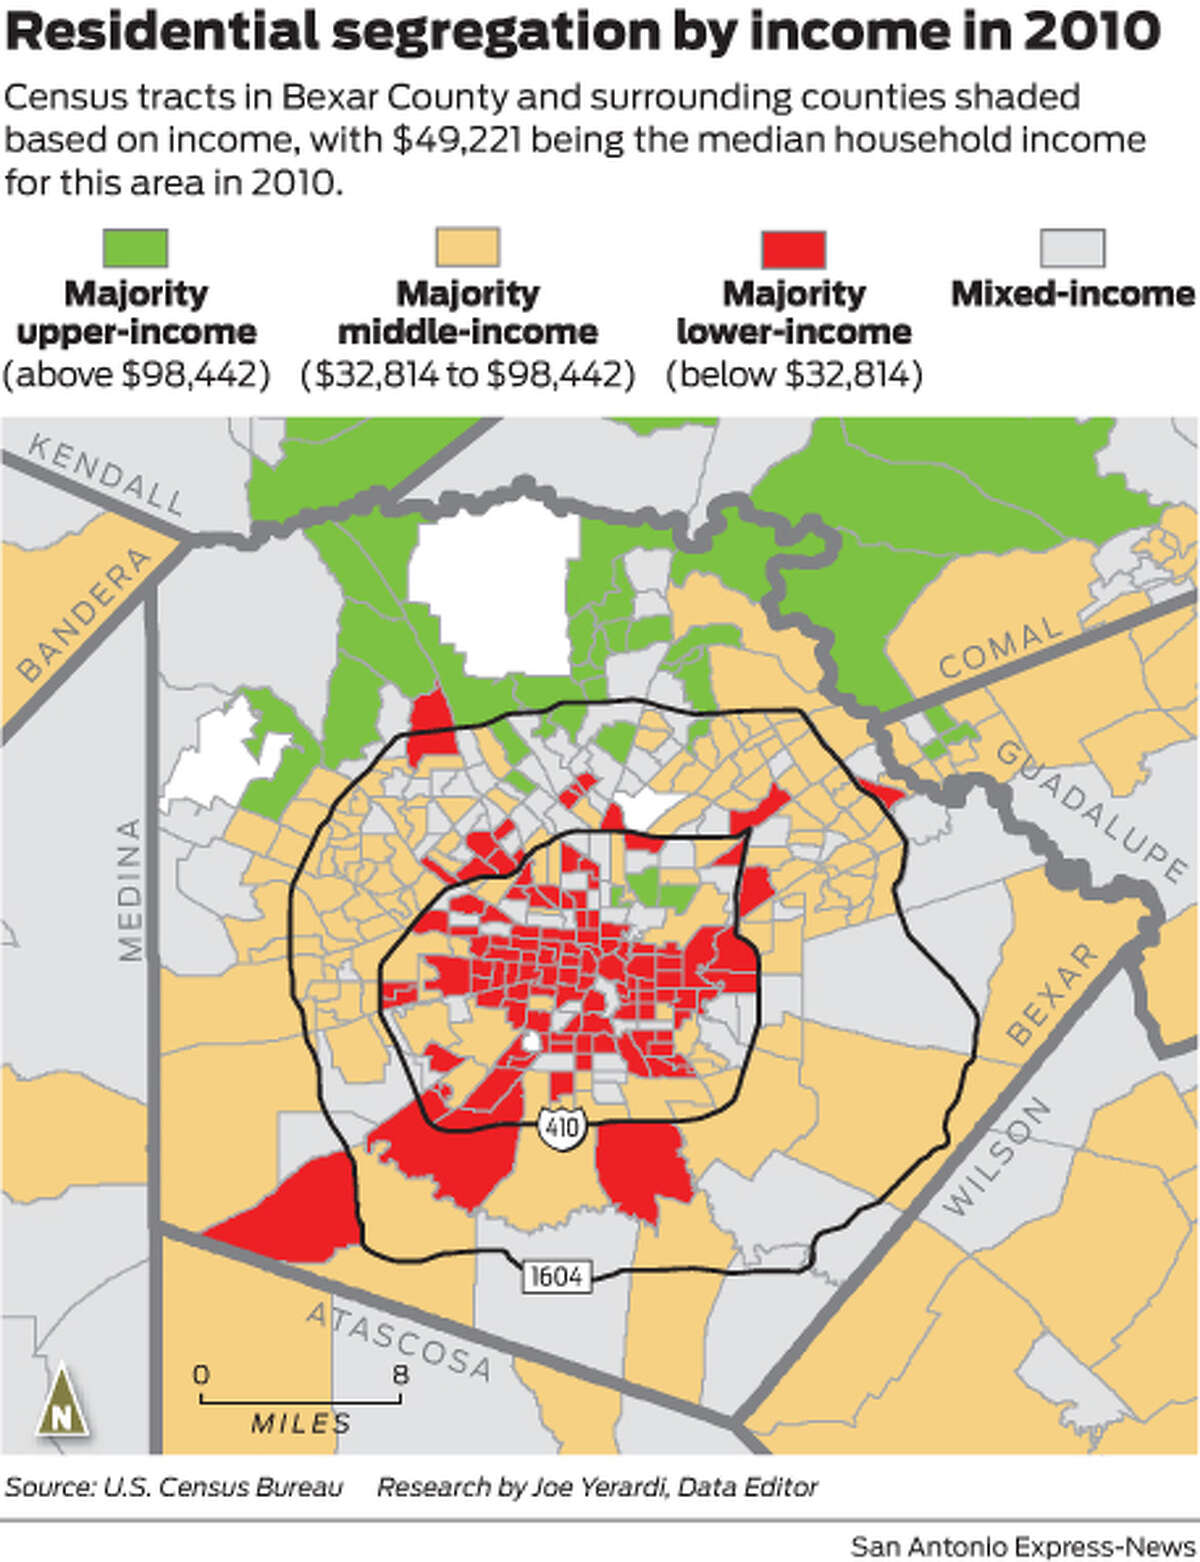 Census tracts in Bexar County and surrounding counties shaded based on income, with $49,221 being the median household income for this area in 2010.